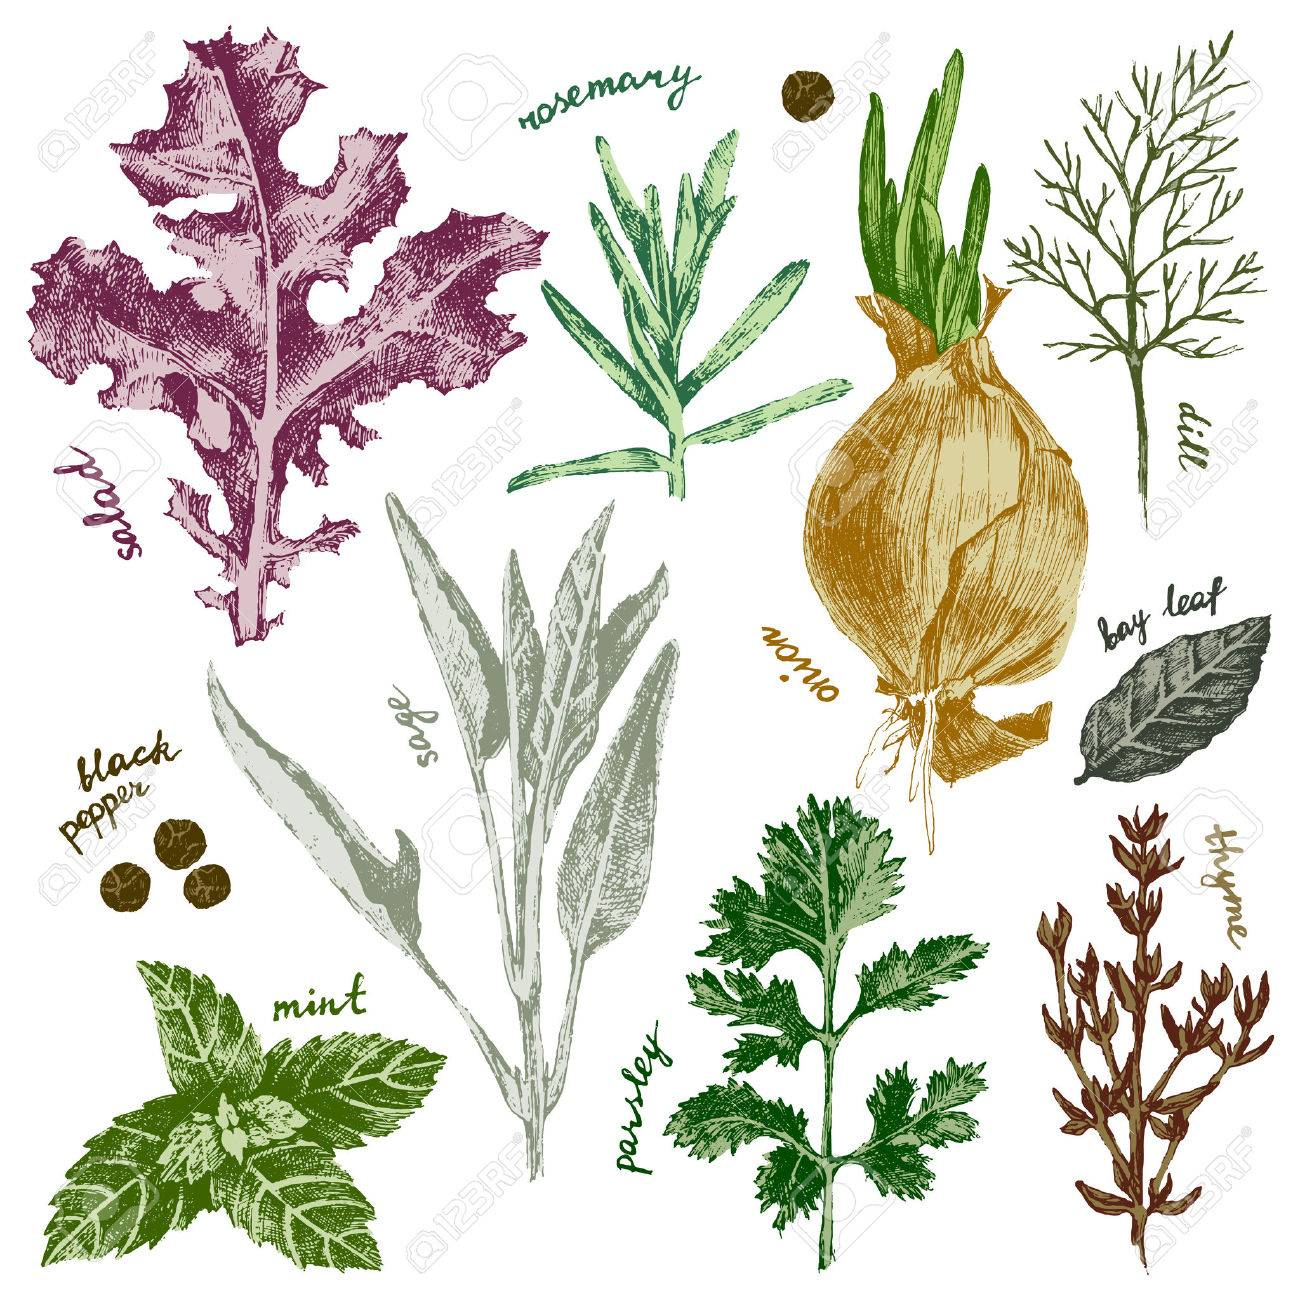 hand drawn highly detailed herbs and spices set in color - 43870908